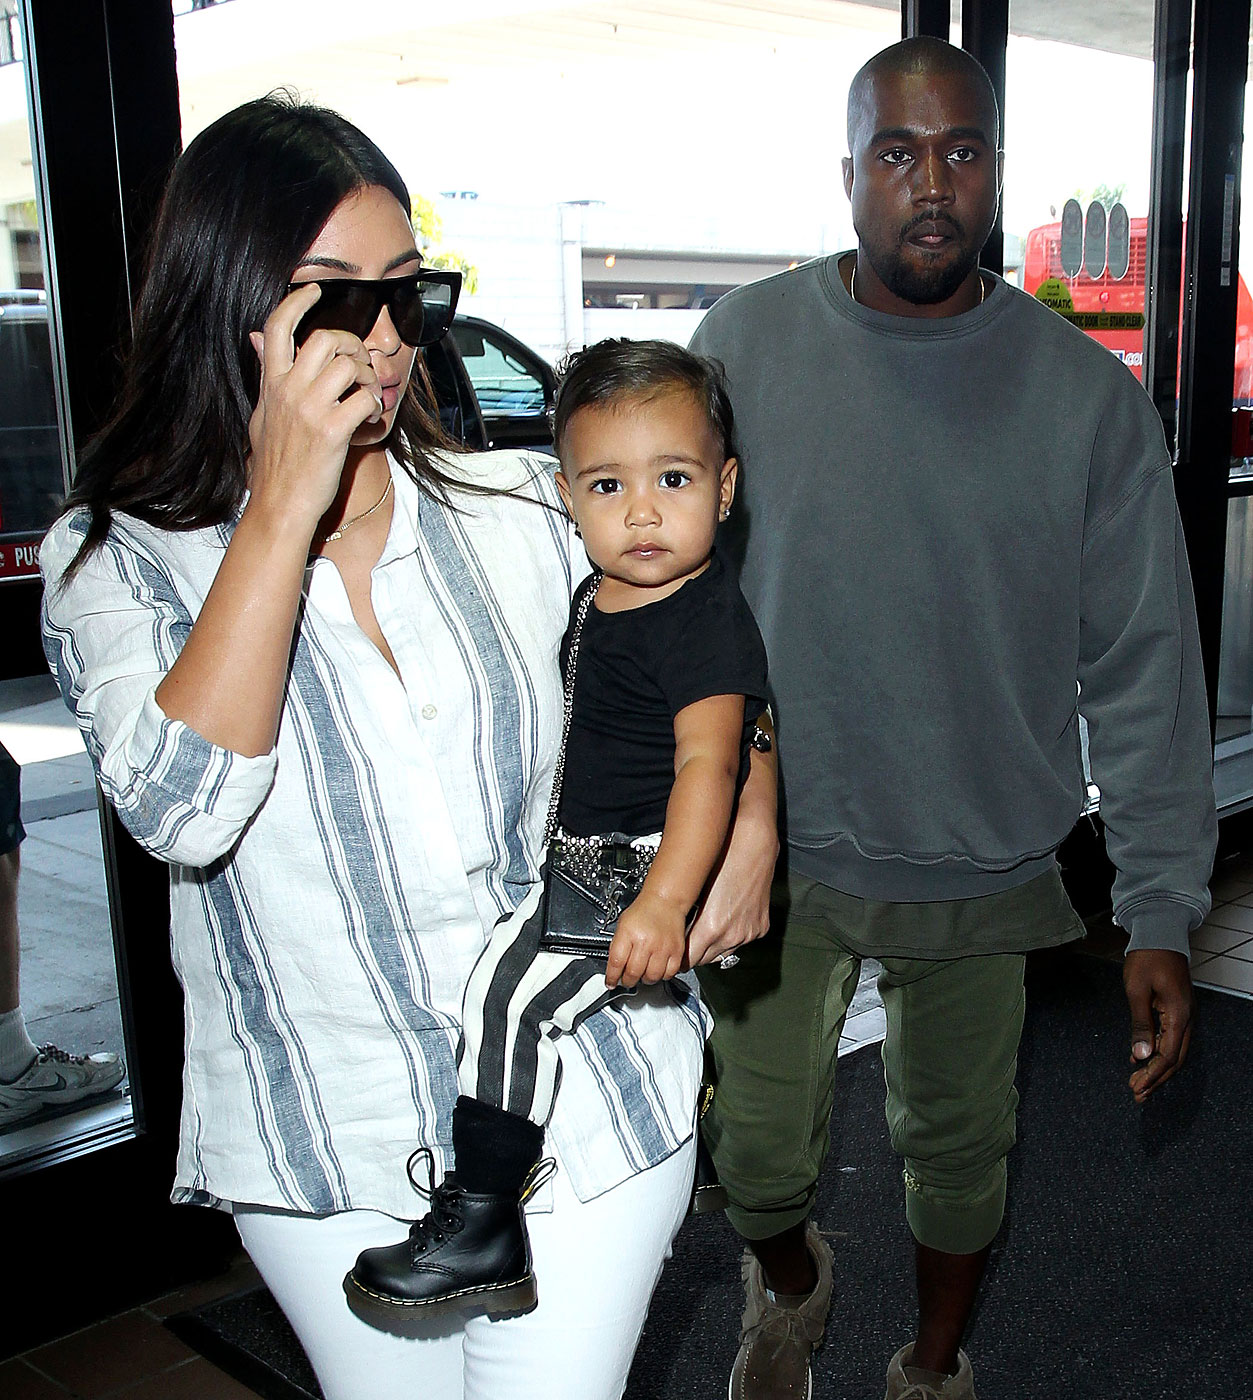 Kim Kardashian, Kanye West and baby North West at the Los Angeles International Airport on Sept. 1, 2014.